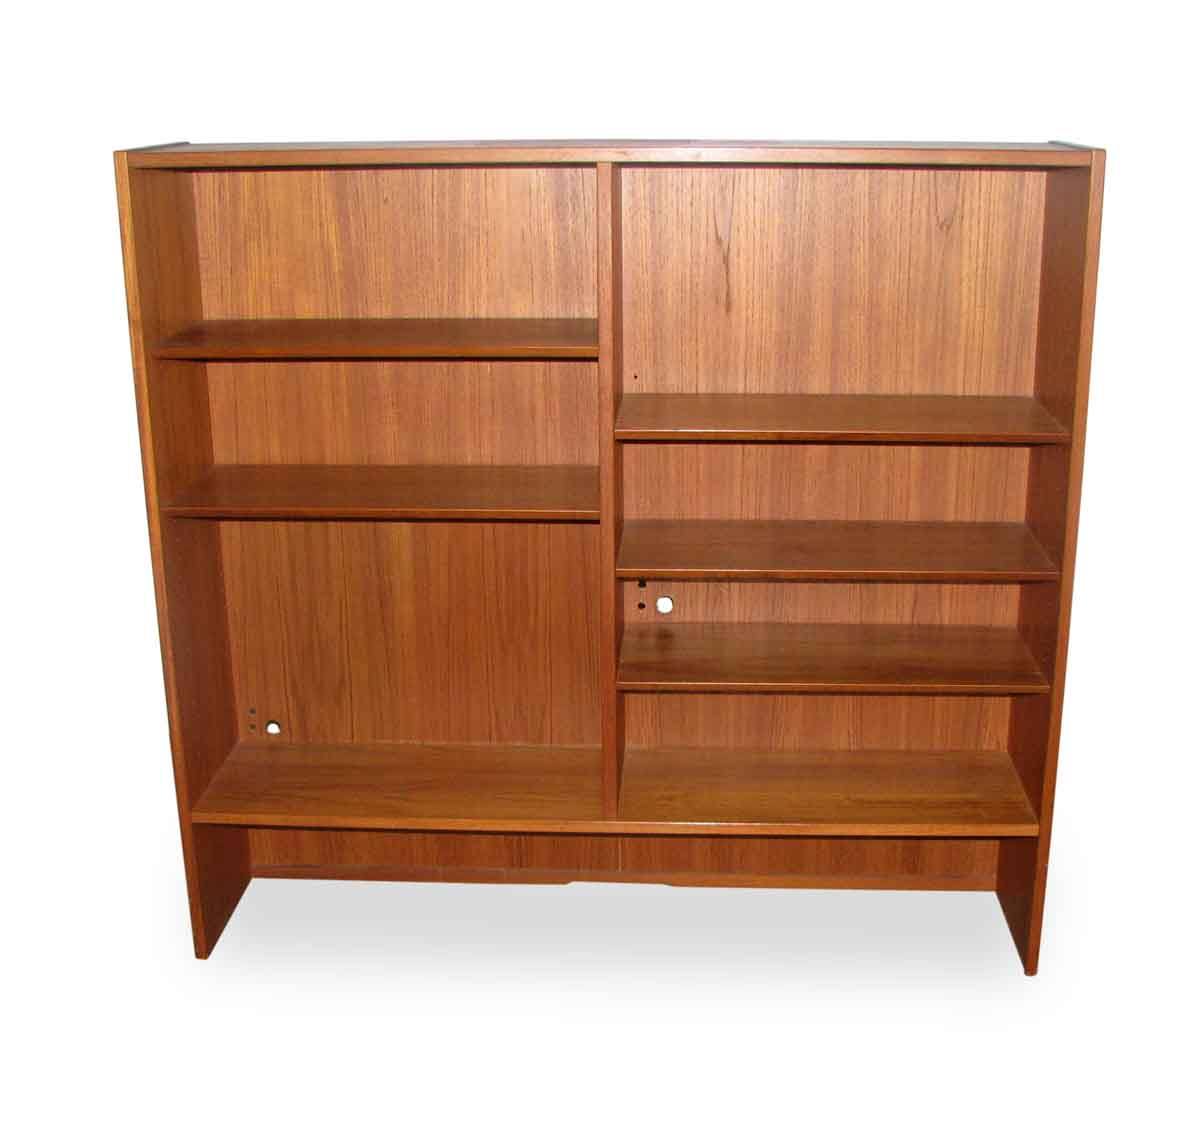 Flossy Five Shelves Mid Century Bookcase Mid Century Bookcase Five Shelves E Good Things Mid Century Bookcase Cabinet Mid Century Bookcase Australia baby Mid Century Bookcase